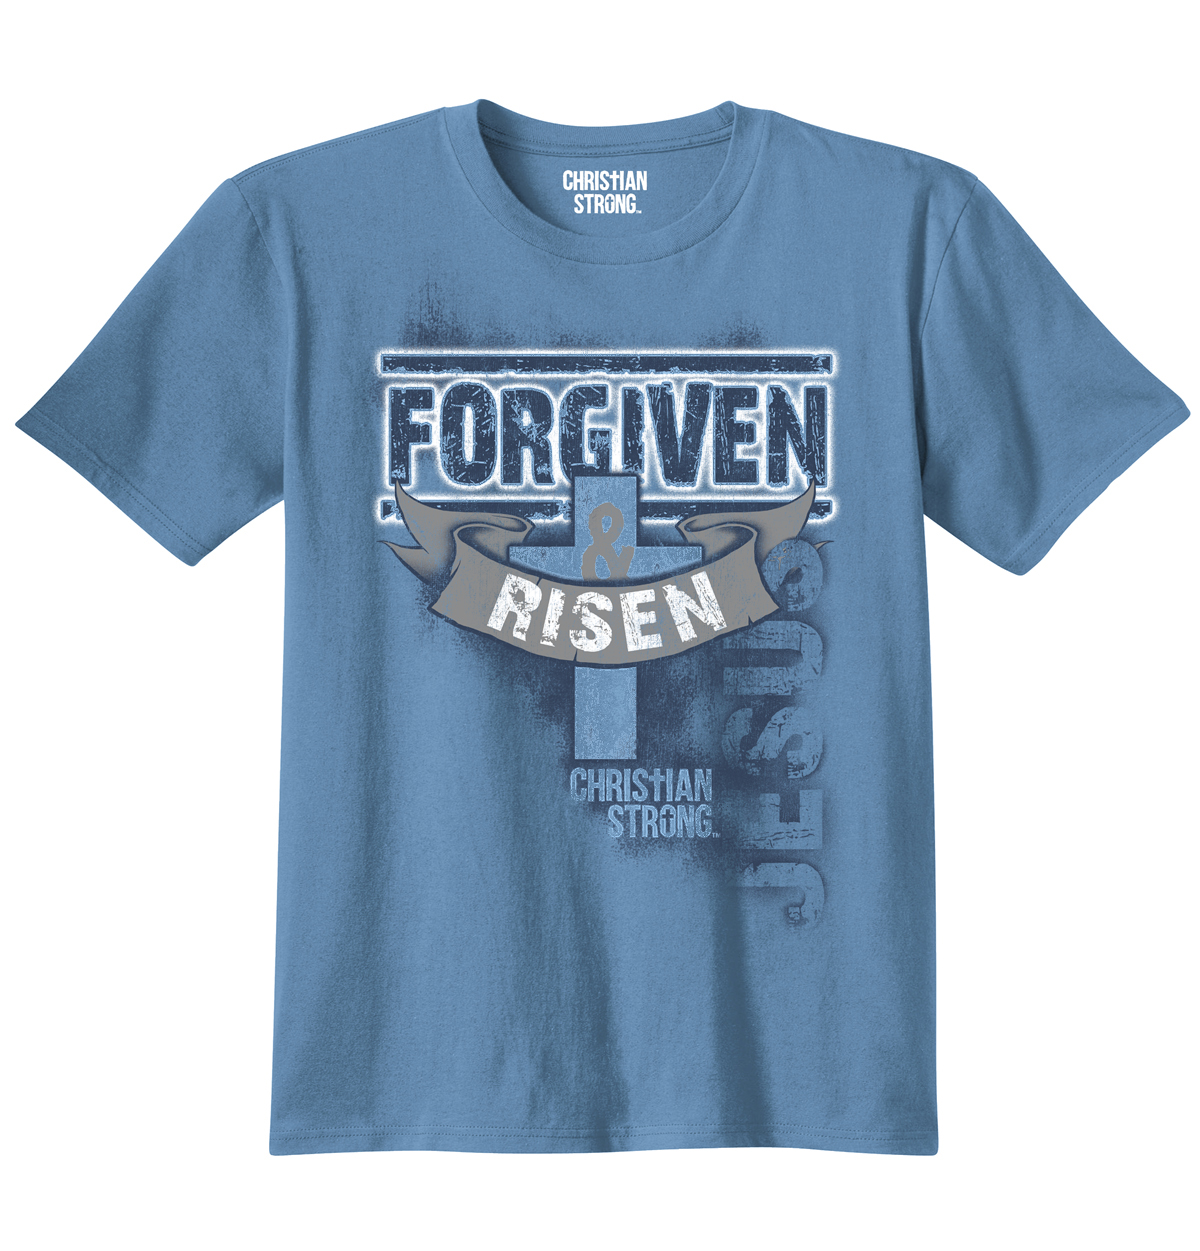 Christian T Shirt Forgiven And Risen Cross Jesus Christ Faith Religious Tee by Christian Strong